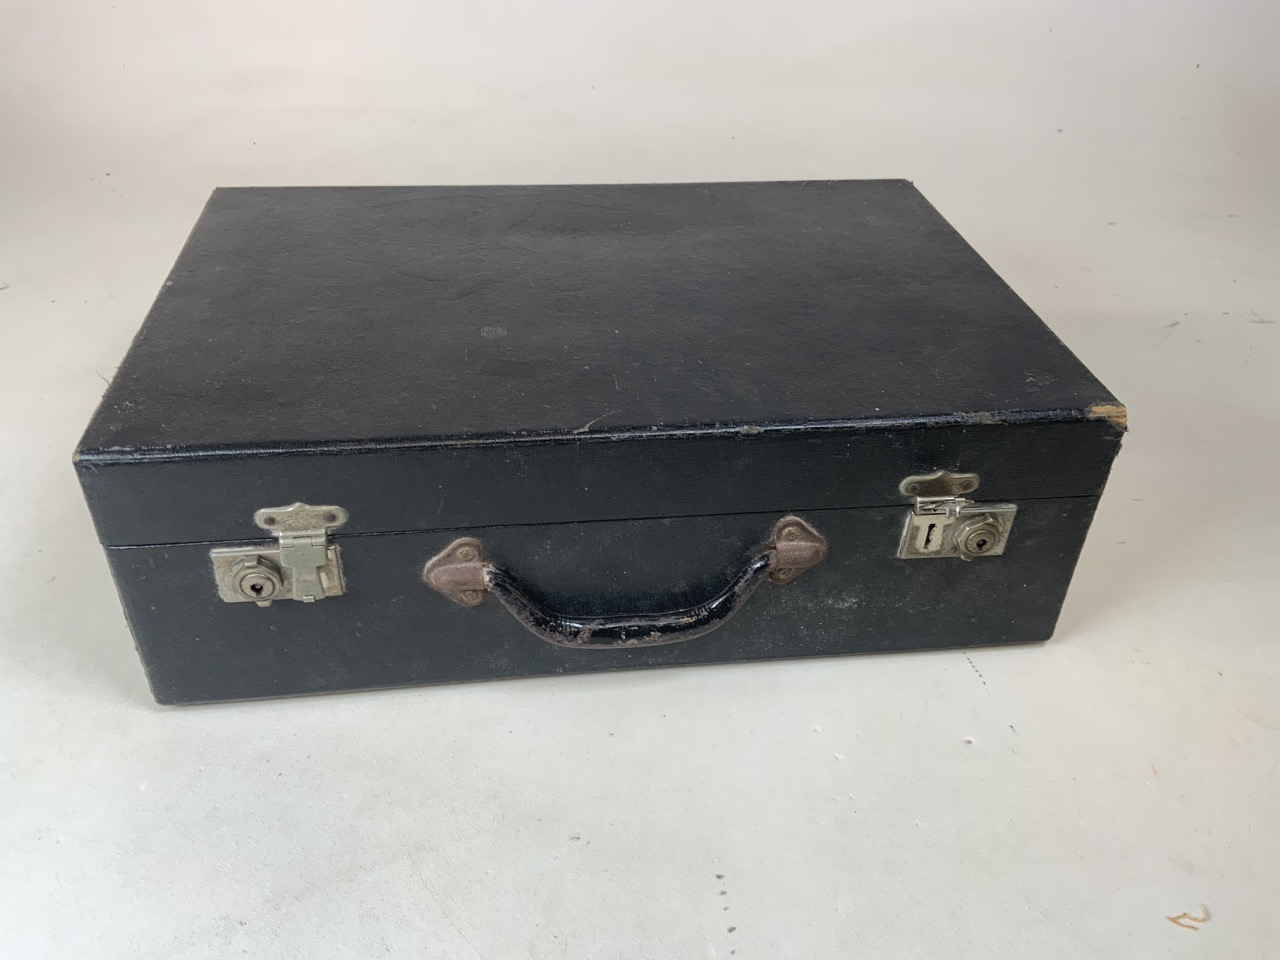 An early Brexton picnic hamper with four place settings in wooden box with yellow interior. Original - Image 6 of 6